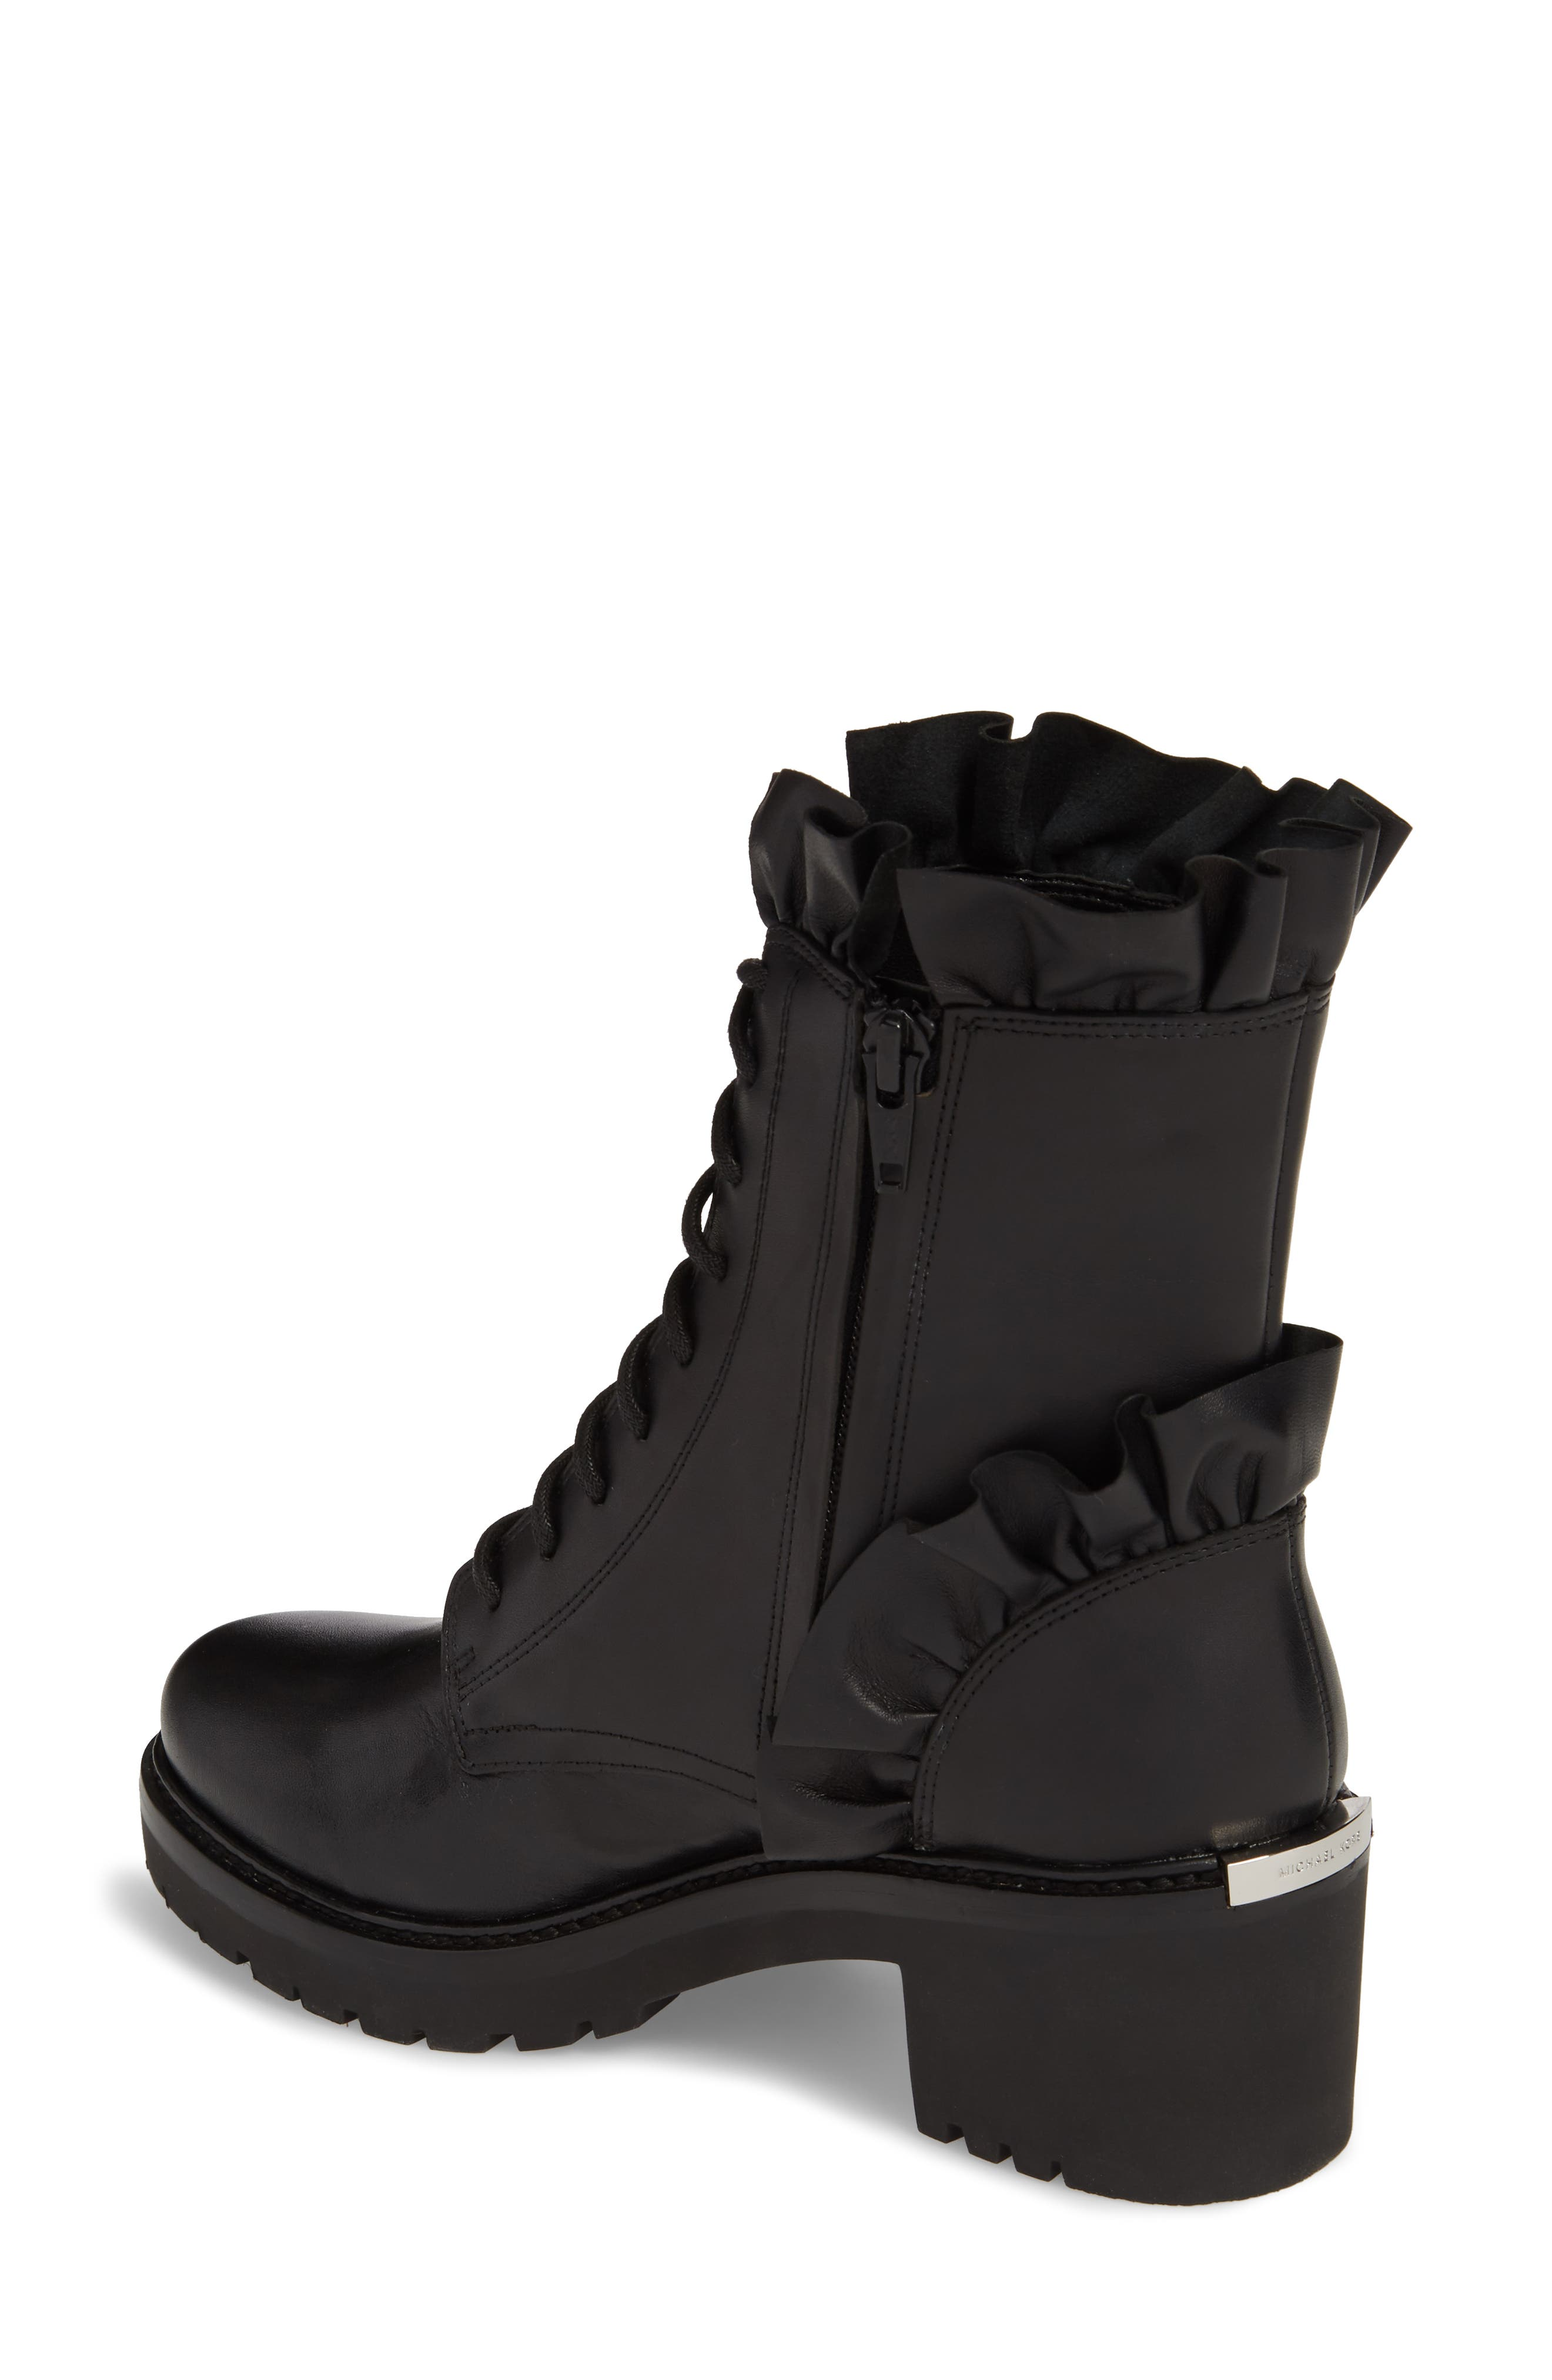 Bella Boot,                             Alternate thumbnail 2, color,                             Black Nappa Leather